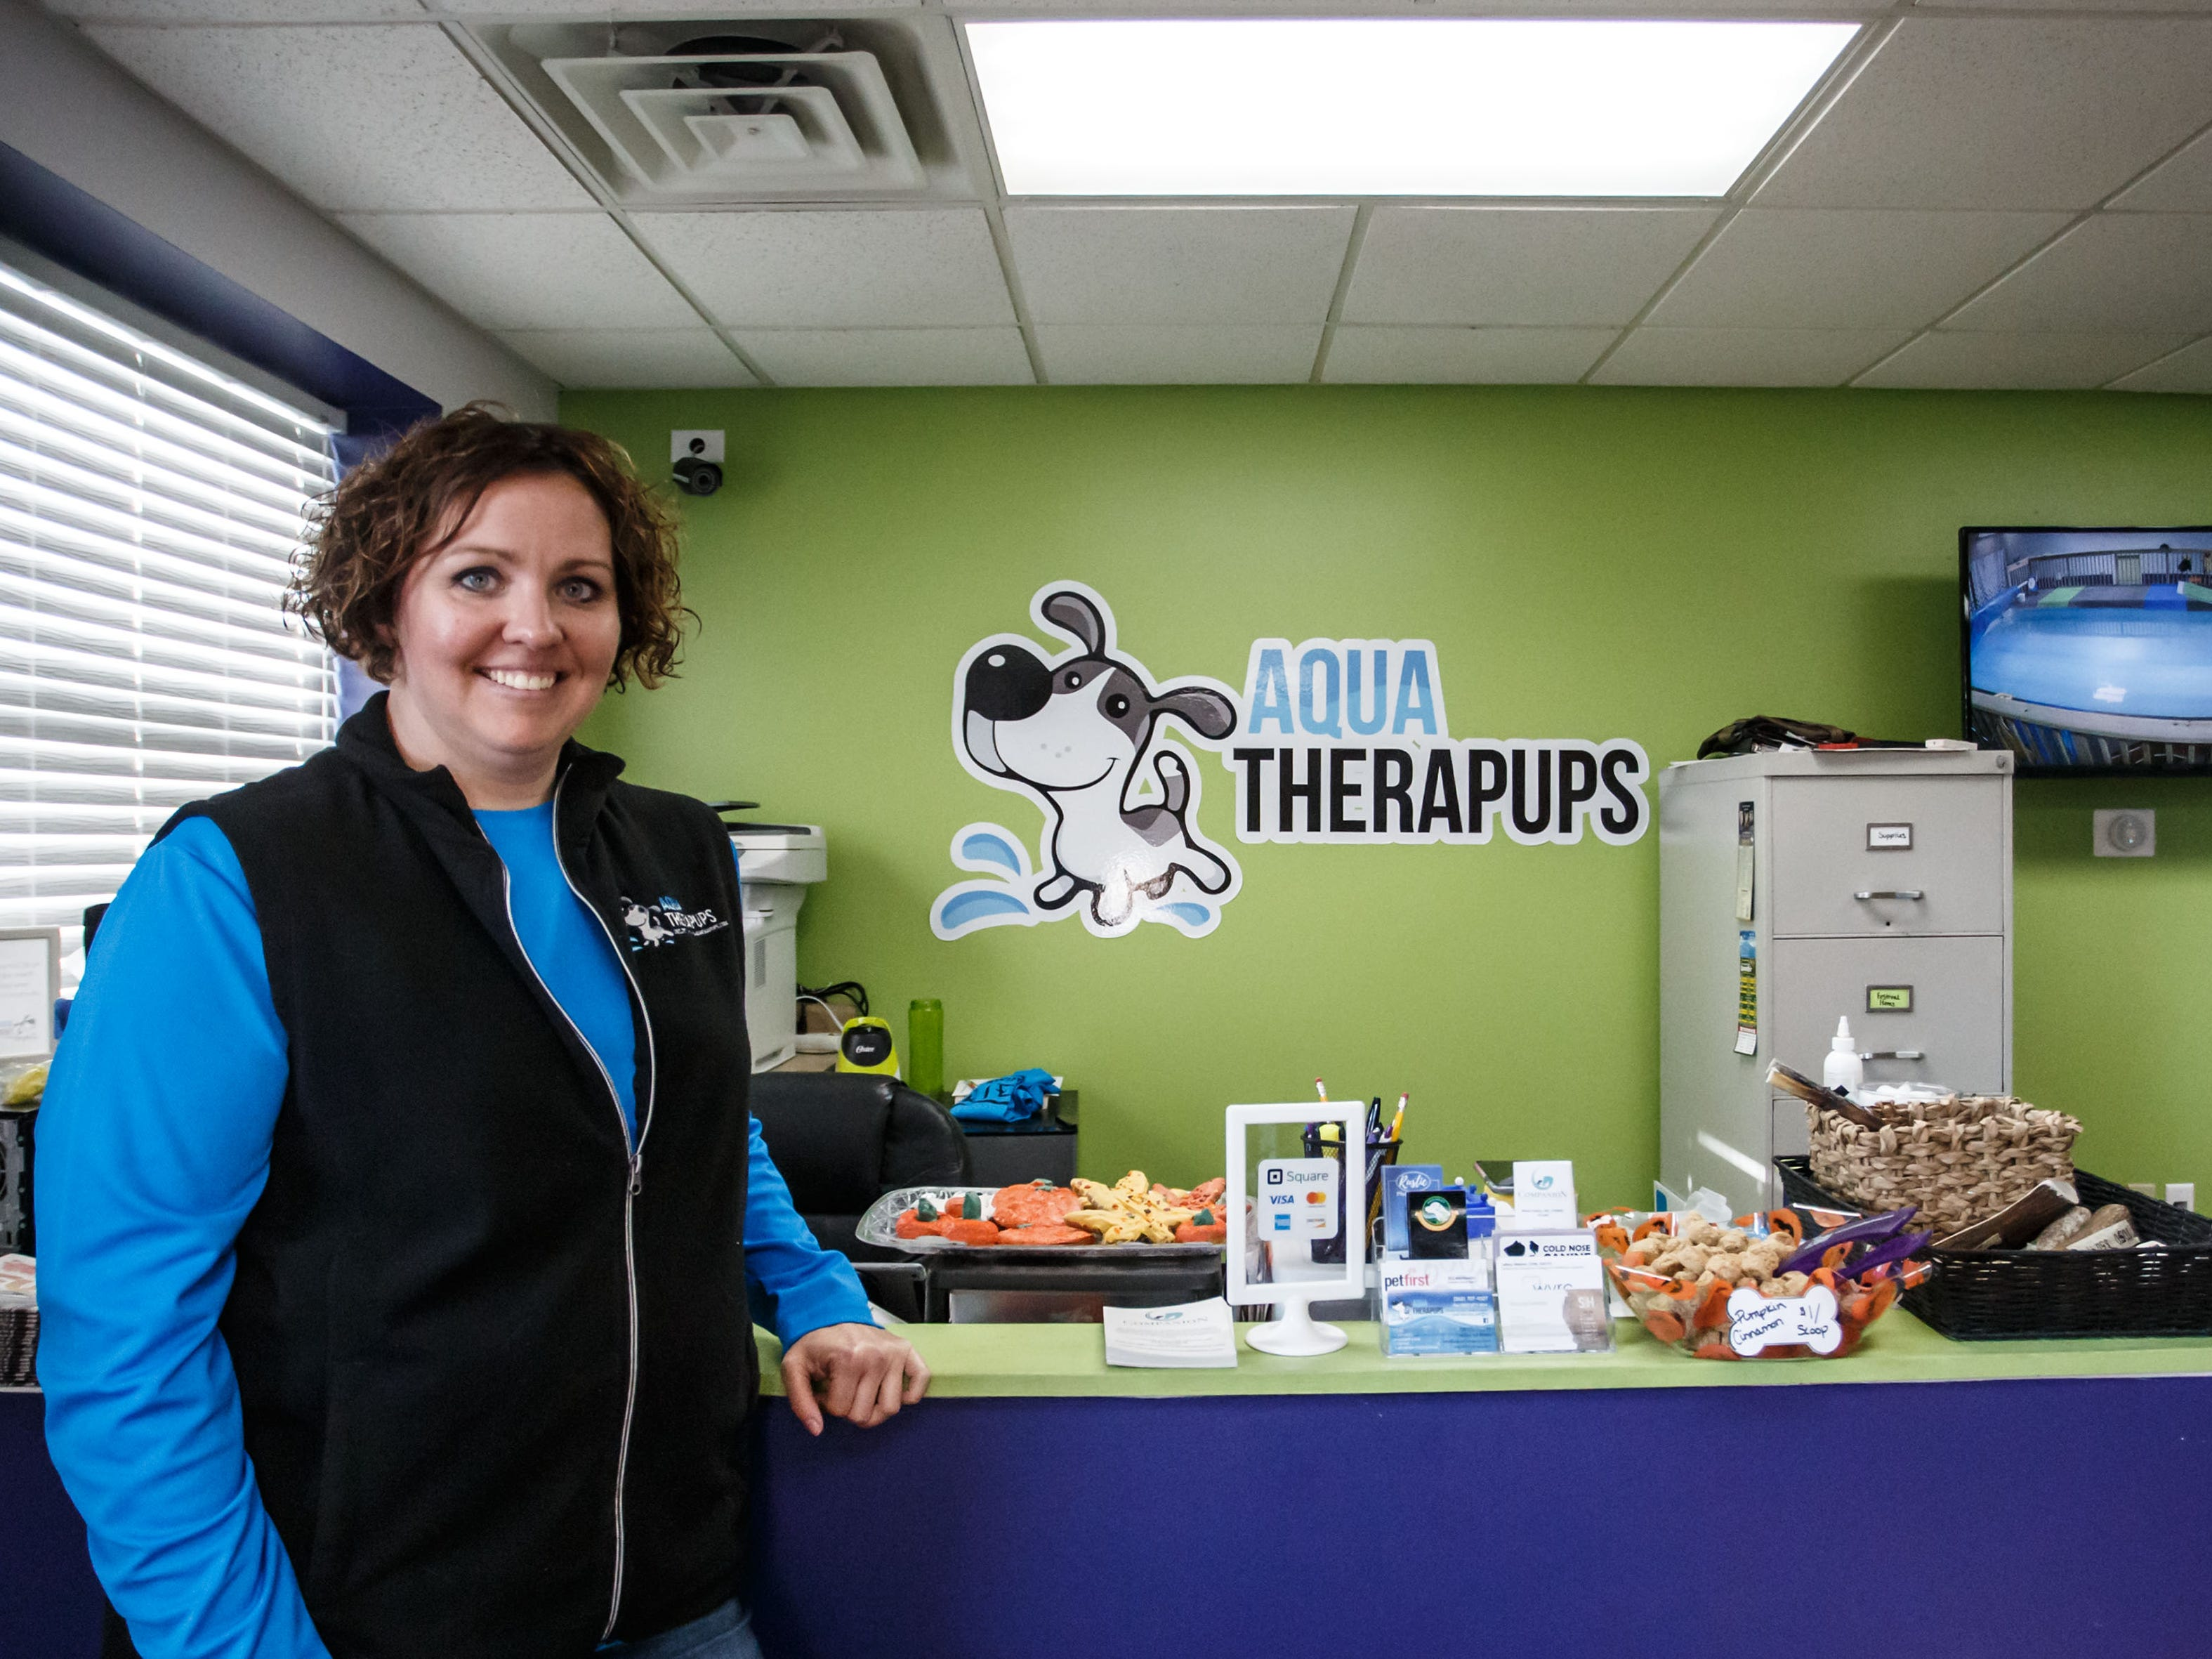 Owner/trainer Becky Pease of Aqua Therapups in Slinger greets customers at the facility on Monday, Oct. 29, 2018. The business is opening a second location in Brookfield this November.